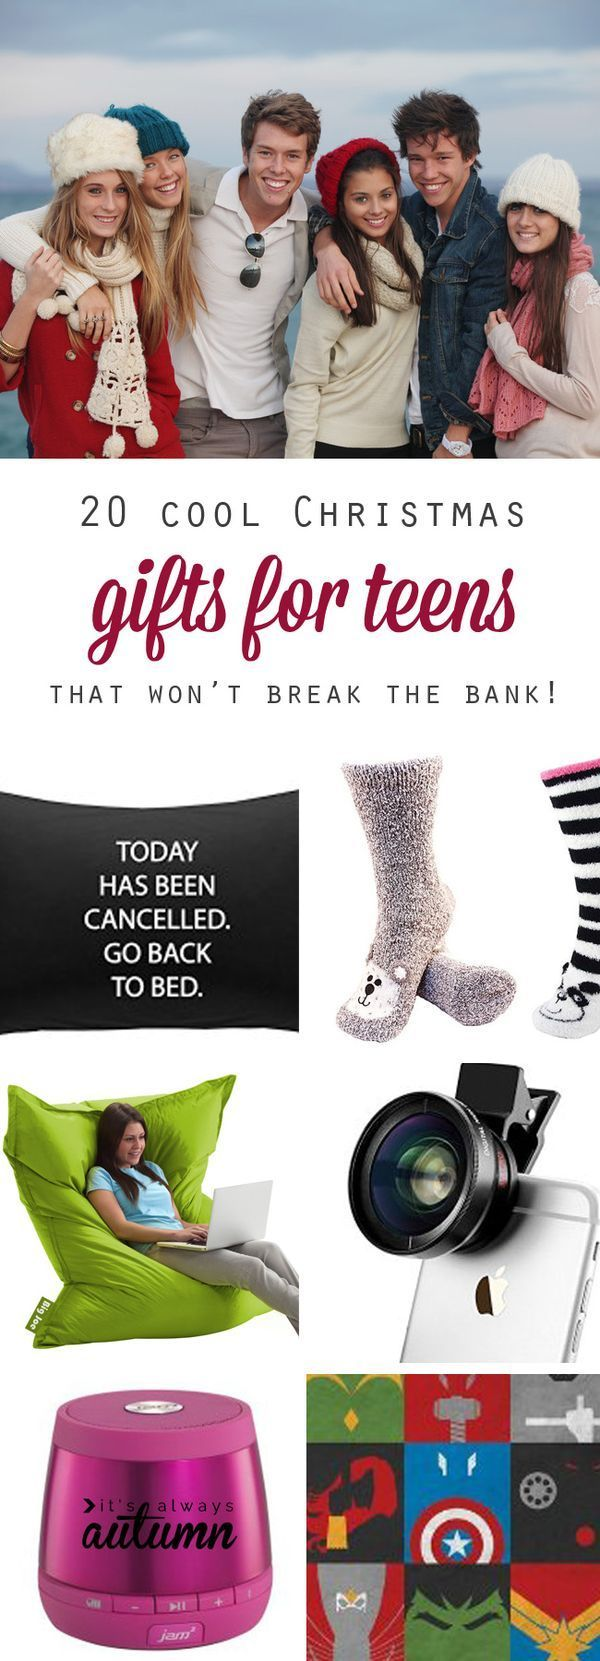 Cool Stocking Stuffers best christmas gift ideas for teens | christmas gift ideas